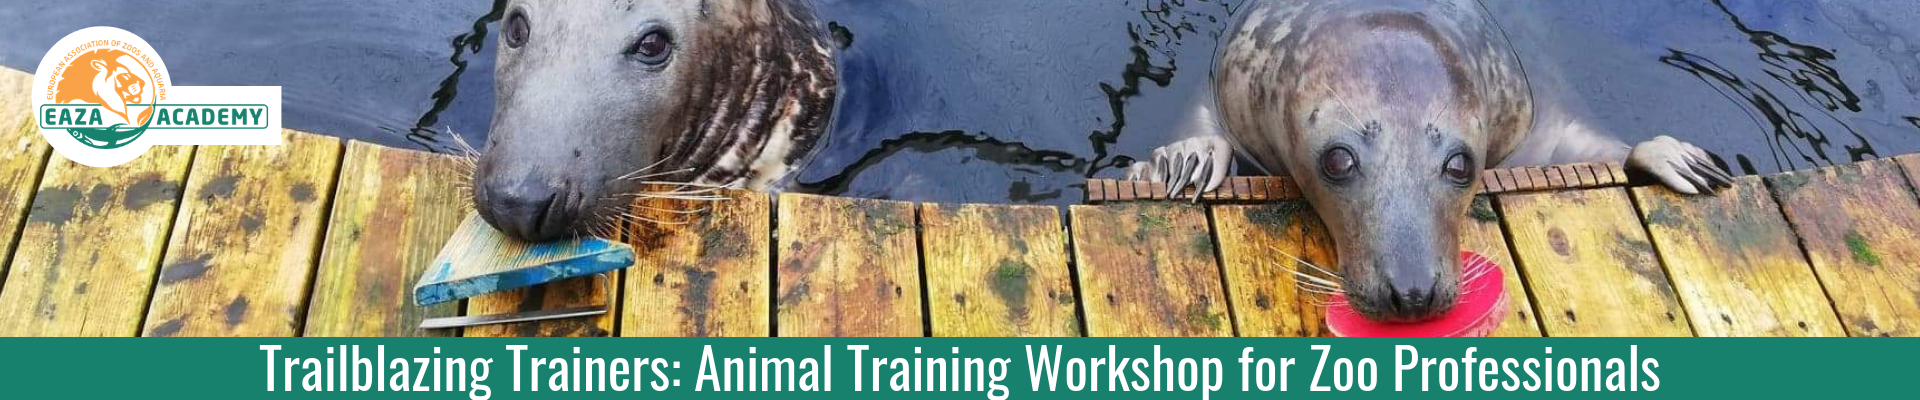 Trailblazing Trainers: Animal Training for Zoo Professionals